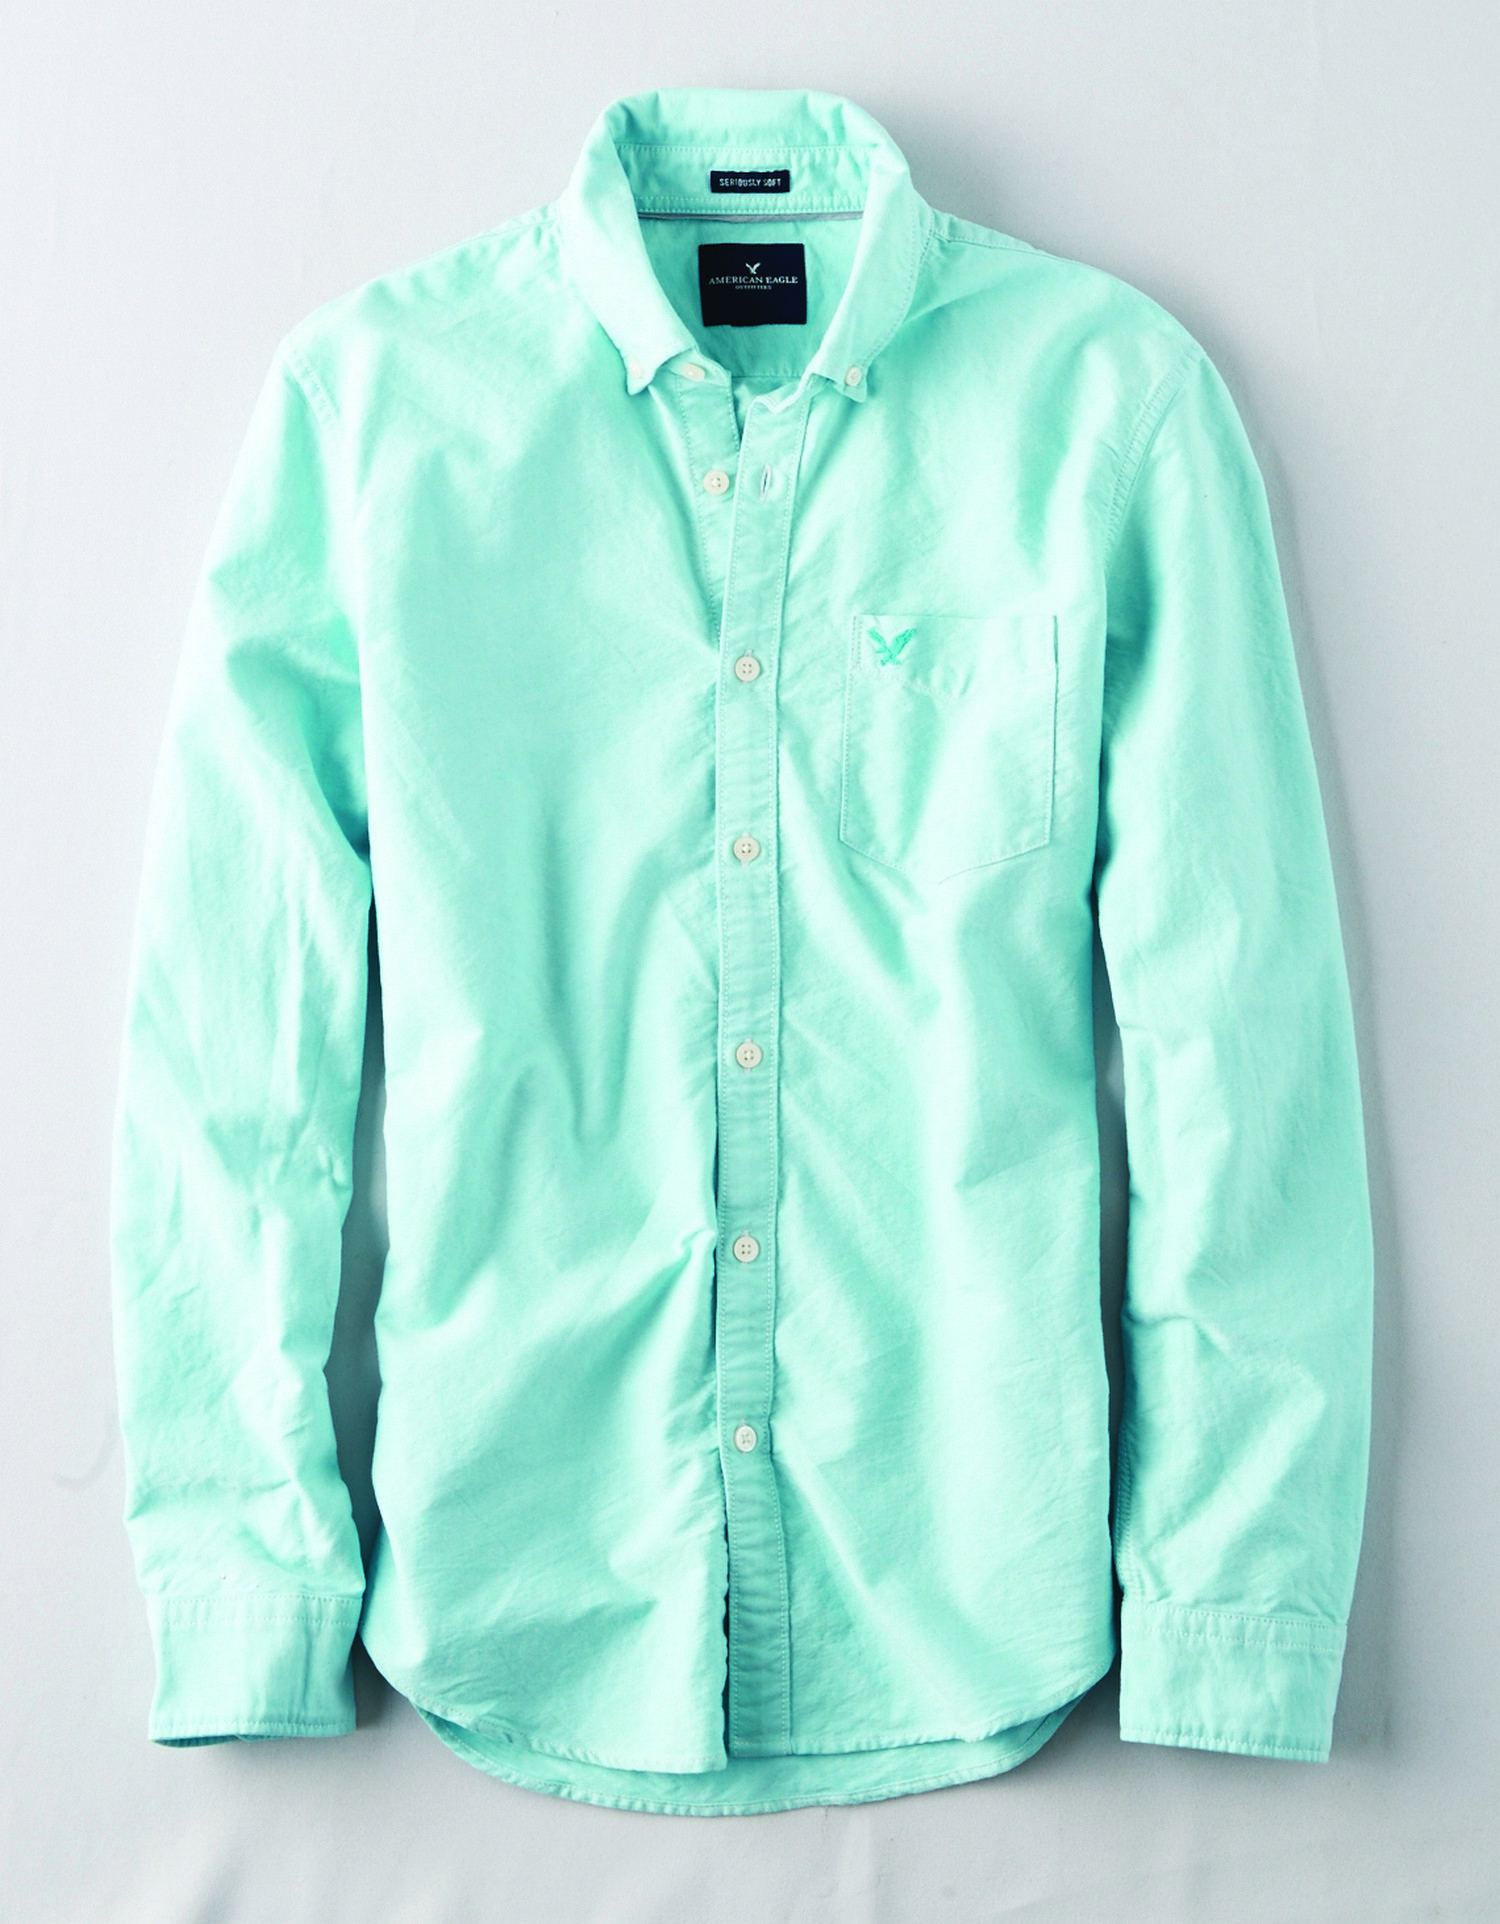 AE - INTL - Apparel - M - INT 1007 SF OXFORD W EAGLE - Mint Green - Left chest pocket - mint green eagle on pocket - button collar BG